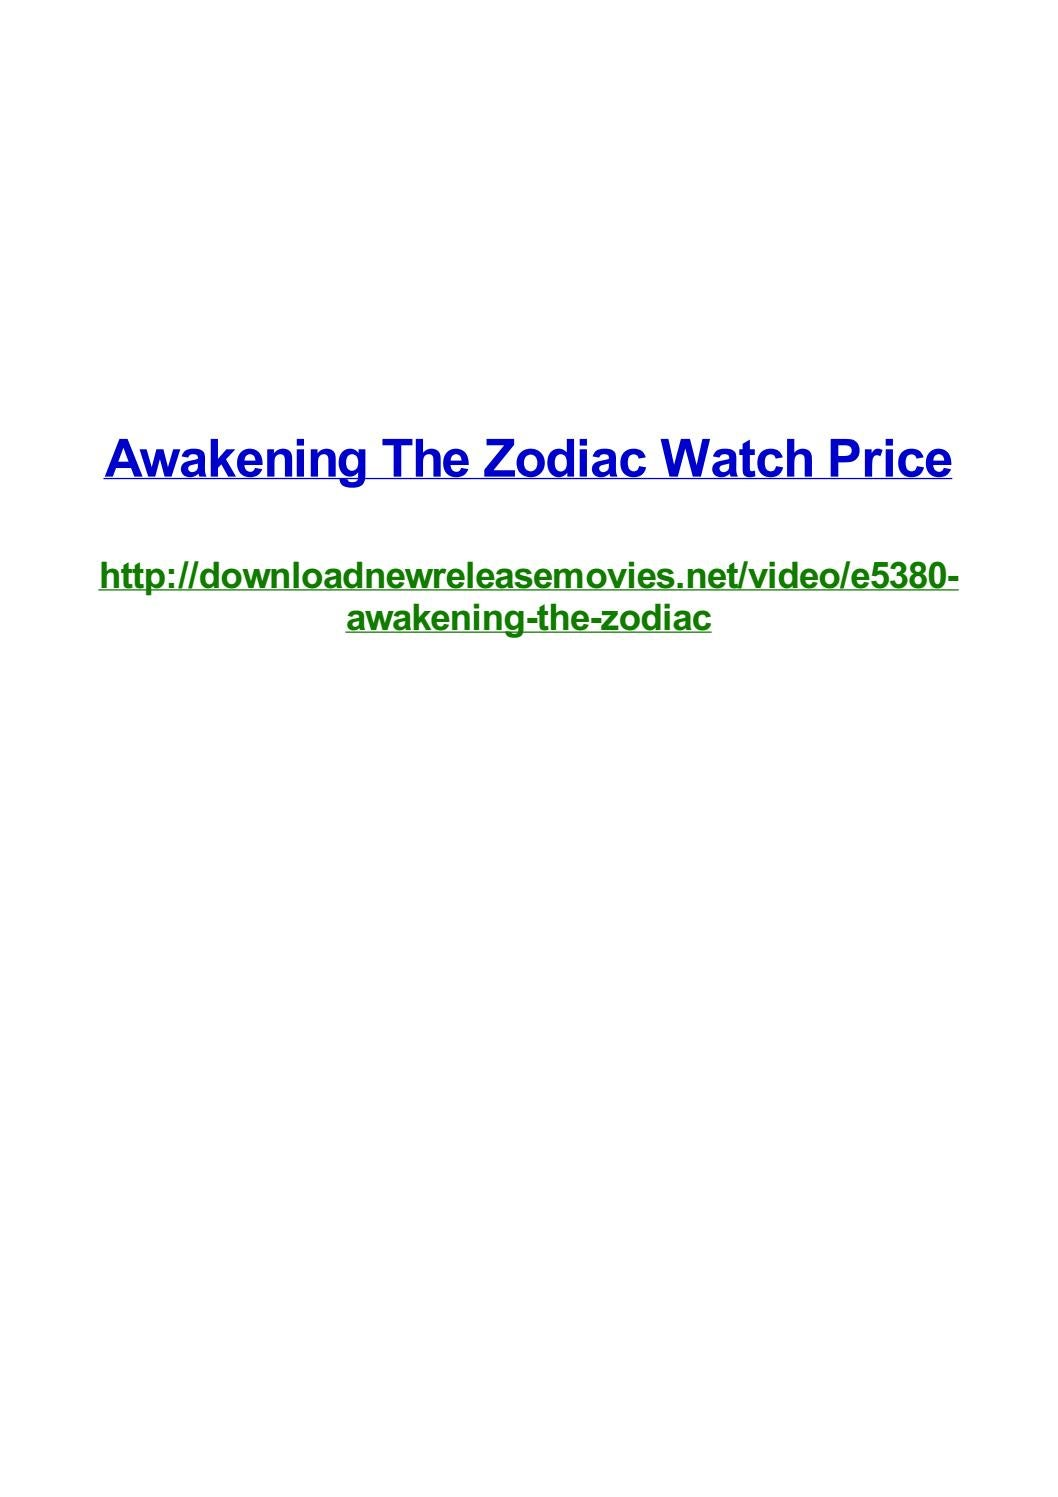 Awakening The Zodiac Watch Price By Frank Seamons Issuu 141 likes · 23 talking about this. issuu